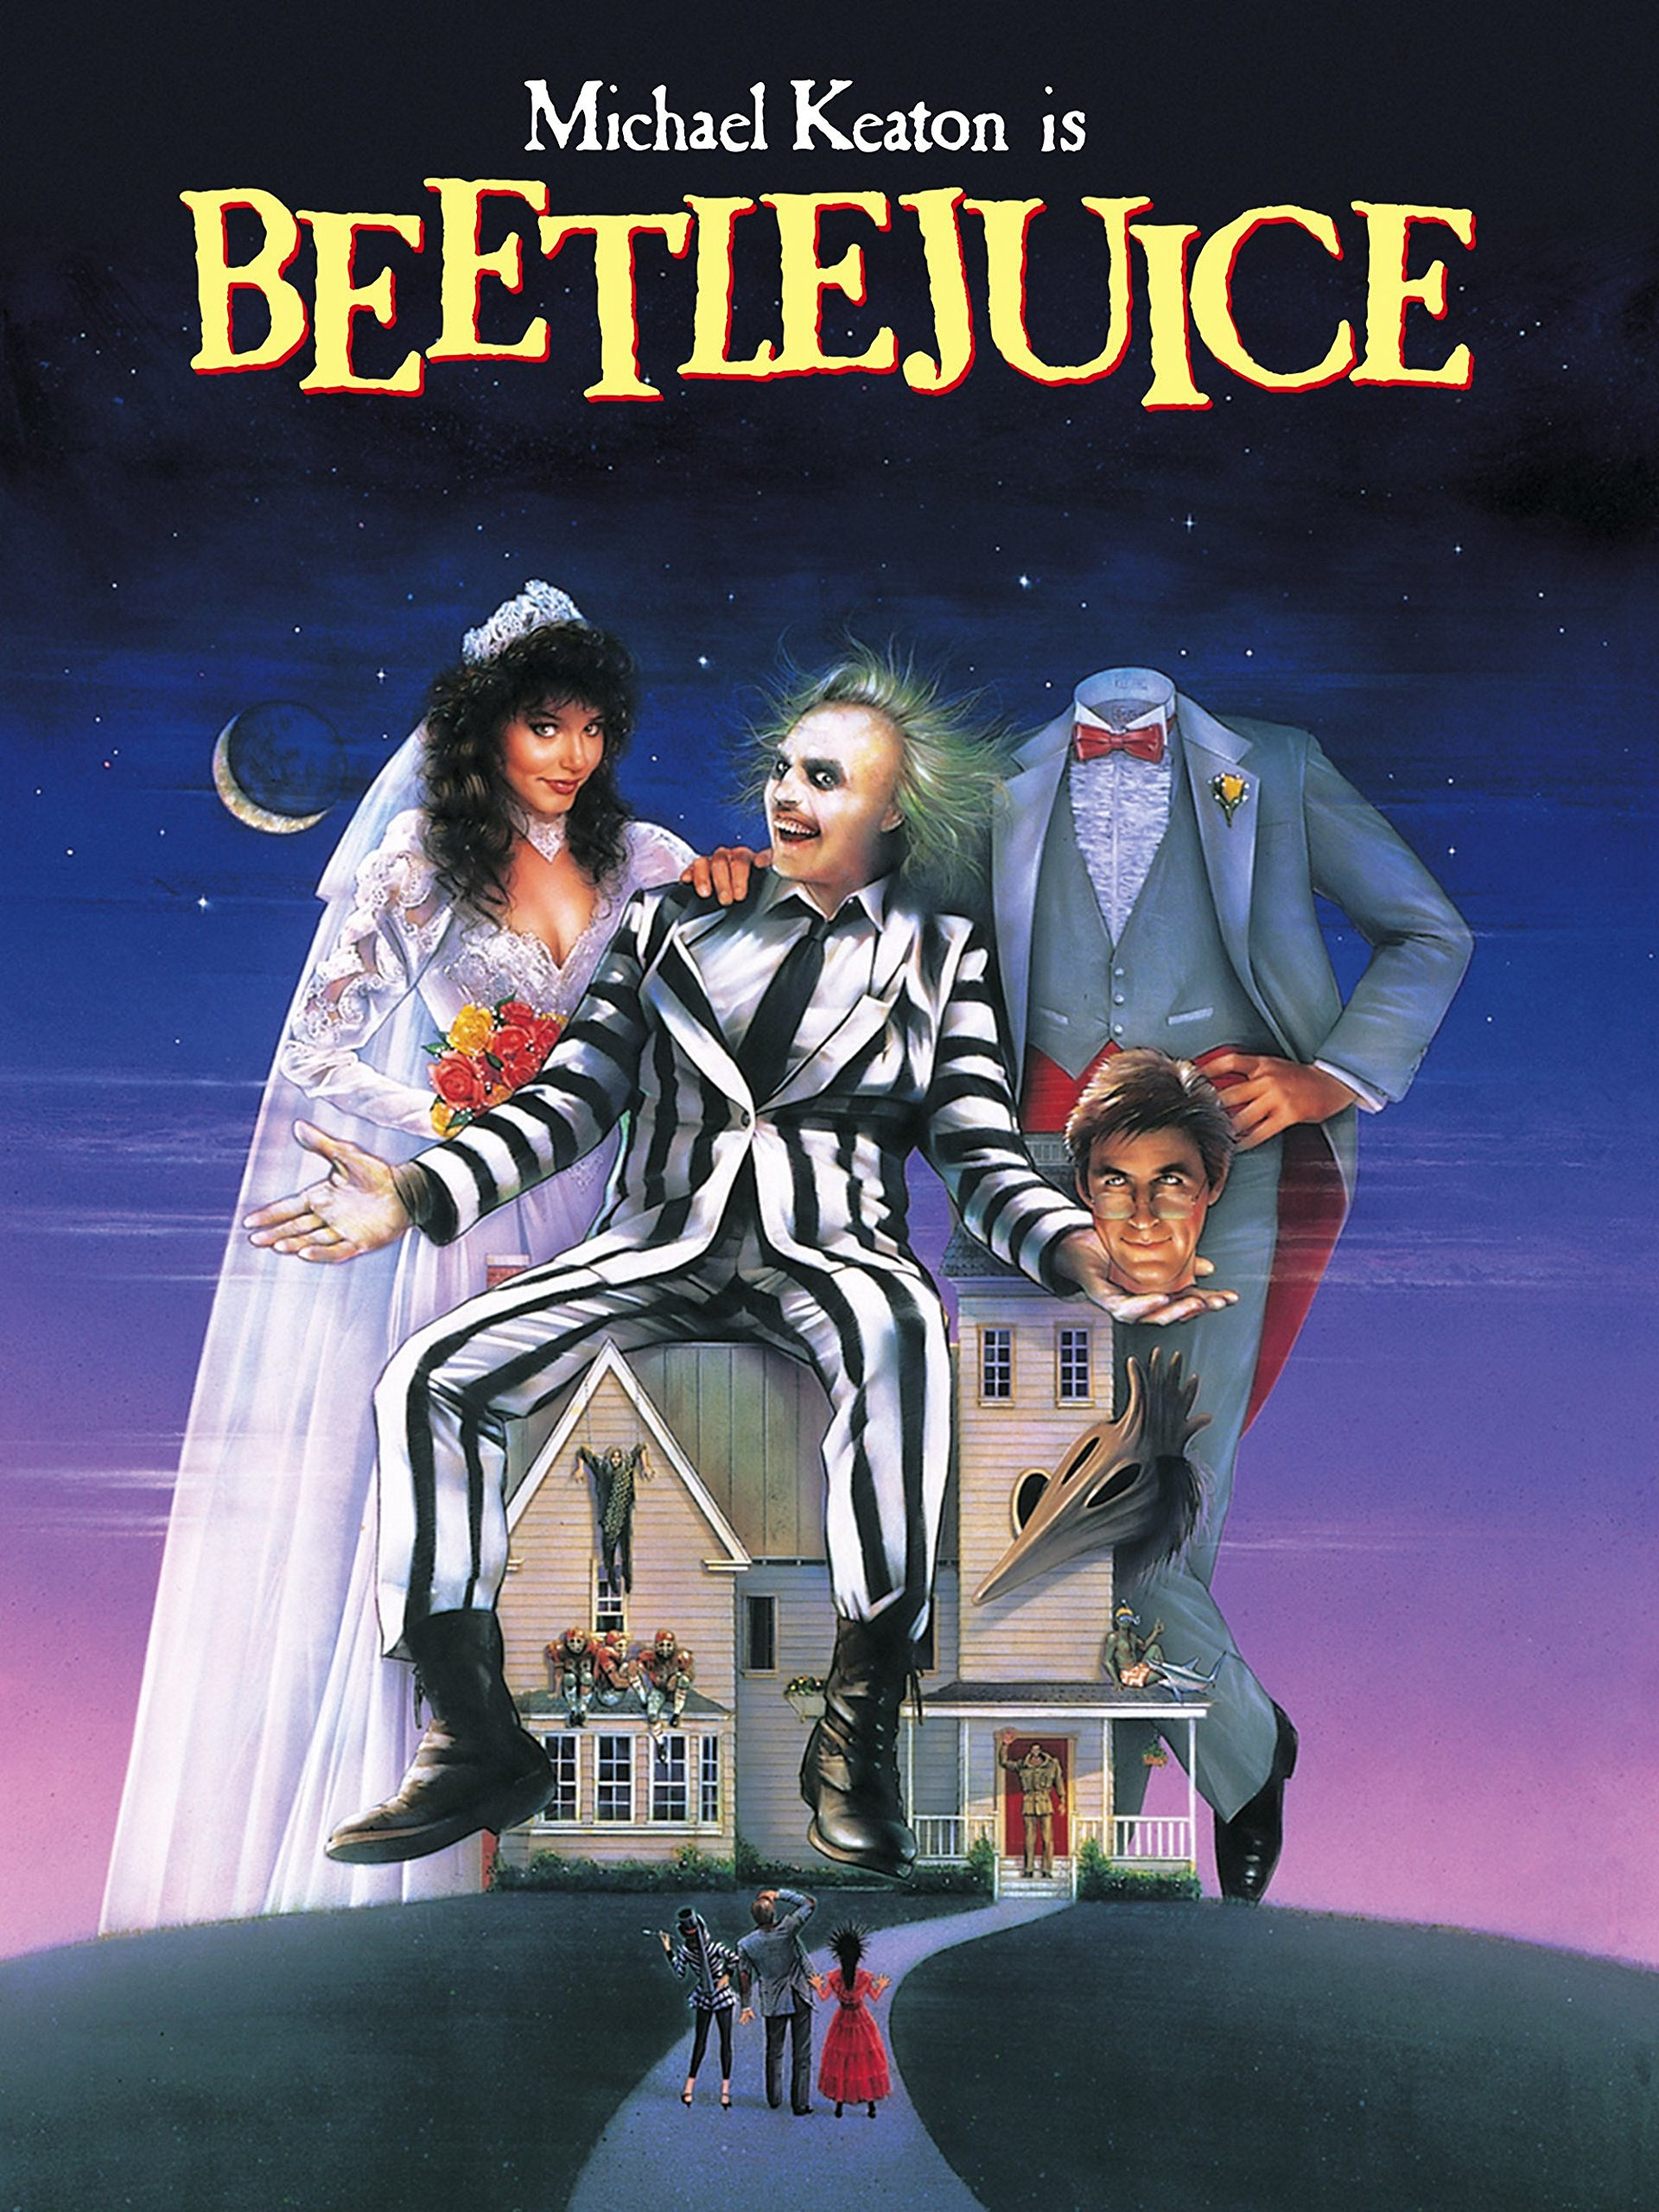 Beetlejuice - October 26-Nov 1, various timesVenue CinemasVenue Classics presents the 30th anniversary of Tim Burton's Beetlejuice starring Michael Keaton, Winona Ryder, Alec Baldwin, and Geena Davis. Rated PG Parental Guidance Suggested. Some material may not be suitable for children.